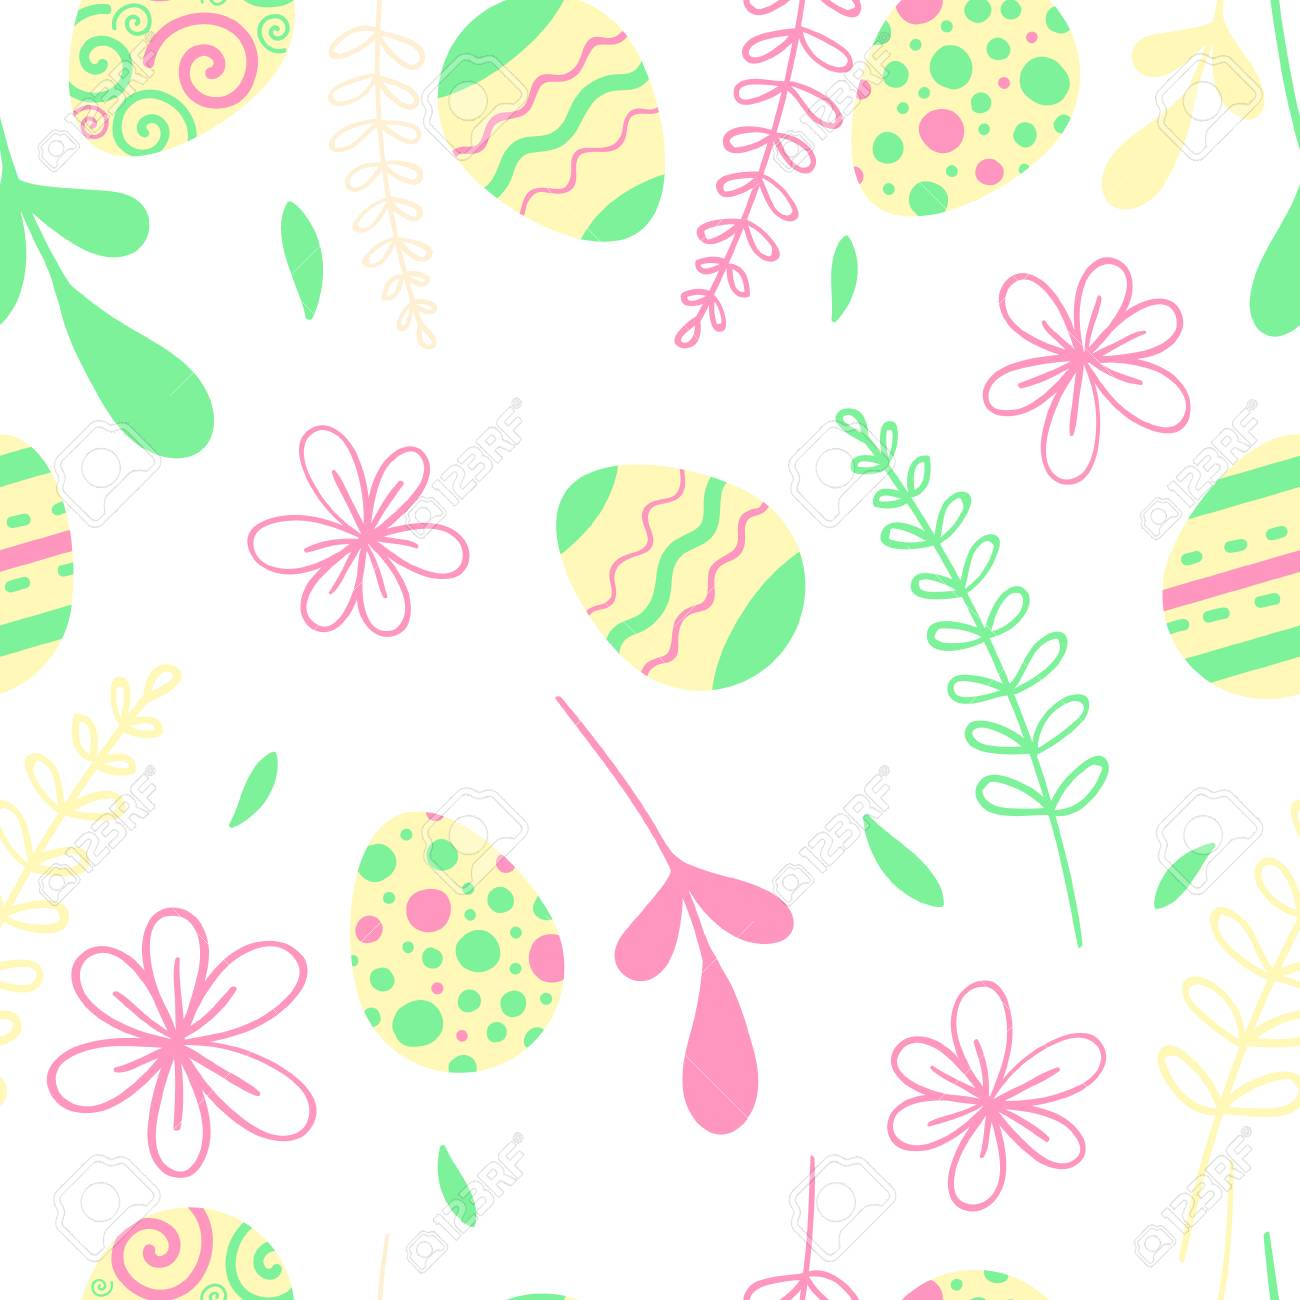 Egg hunt vector illustration. Easter seamless pattern with flowers. - 97943821